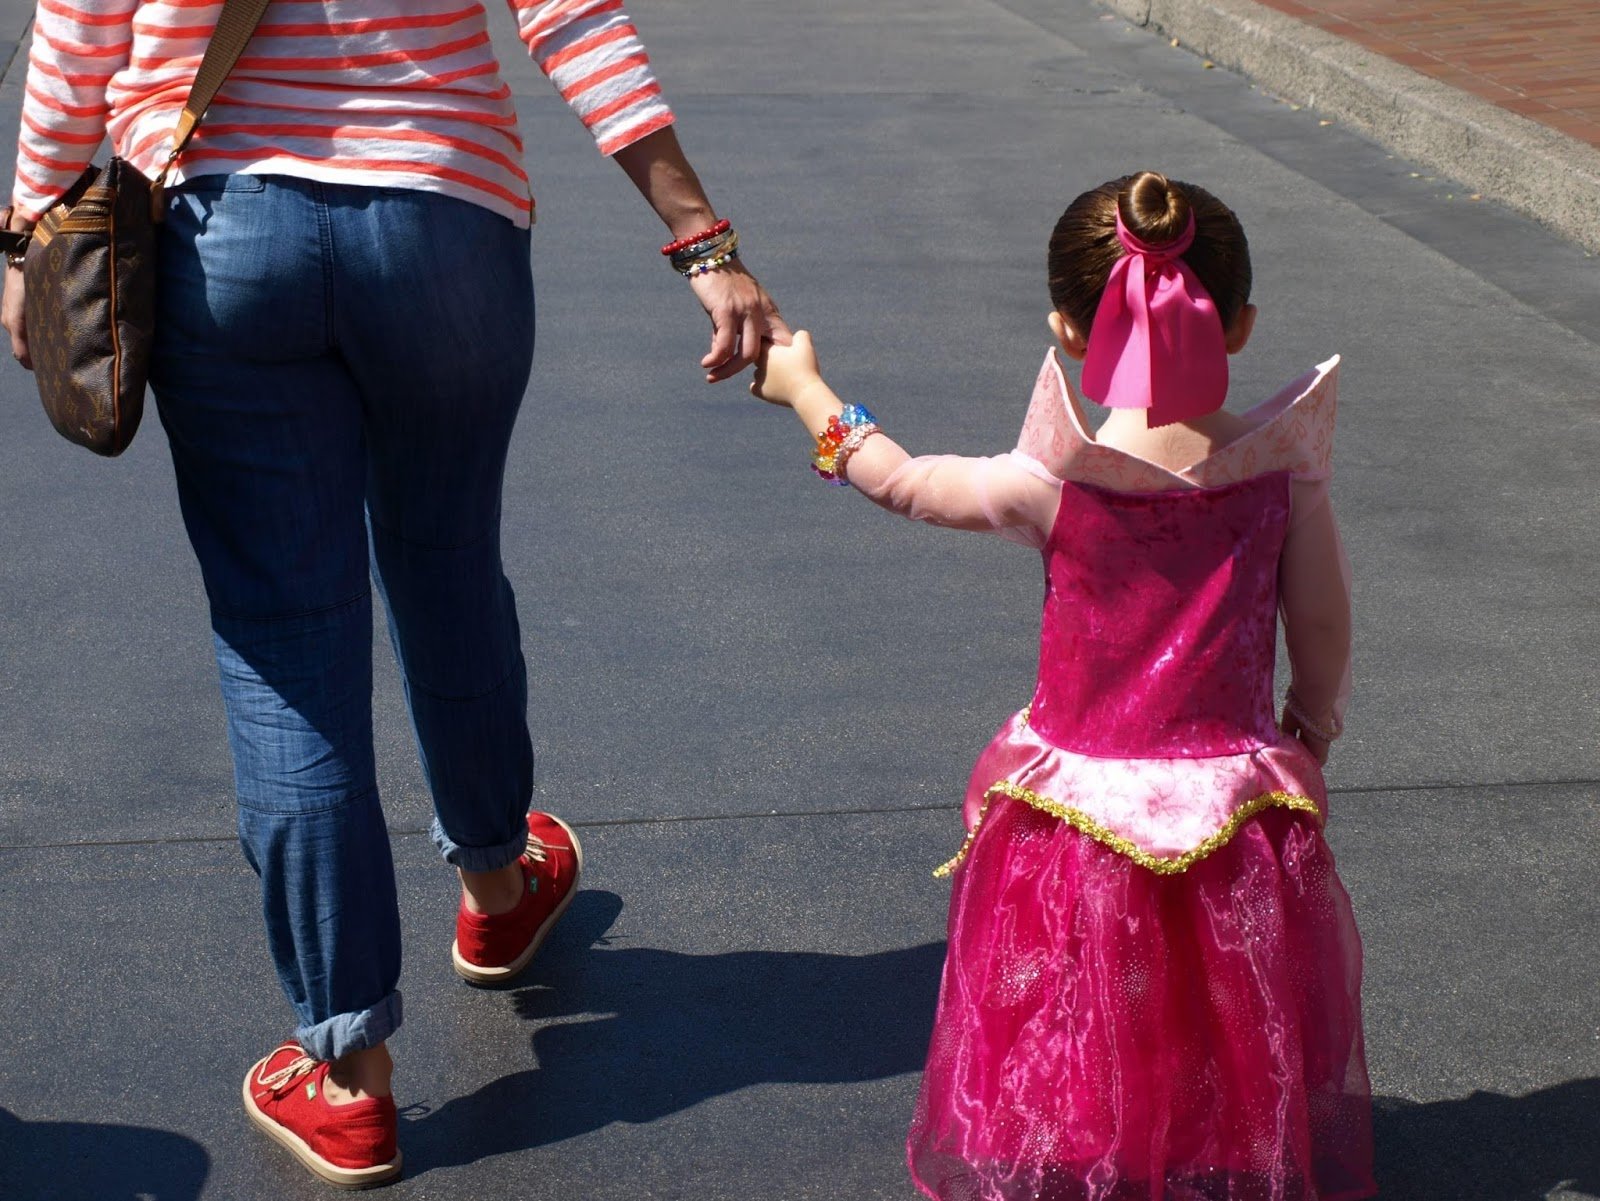 montessori trip family vacation theme park Disneyland. Girl in princess costume holding mother's hand.